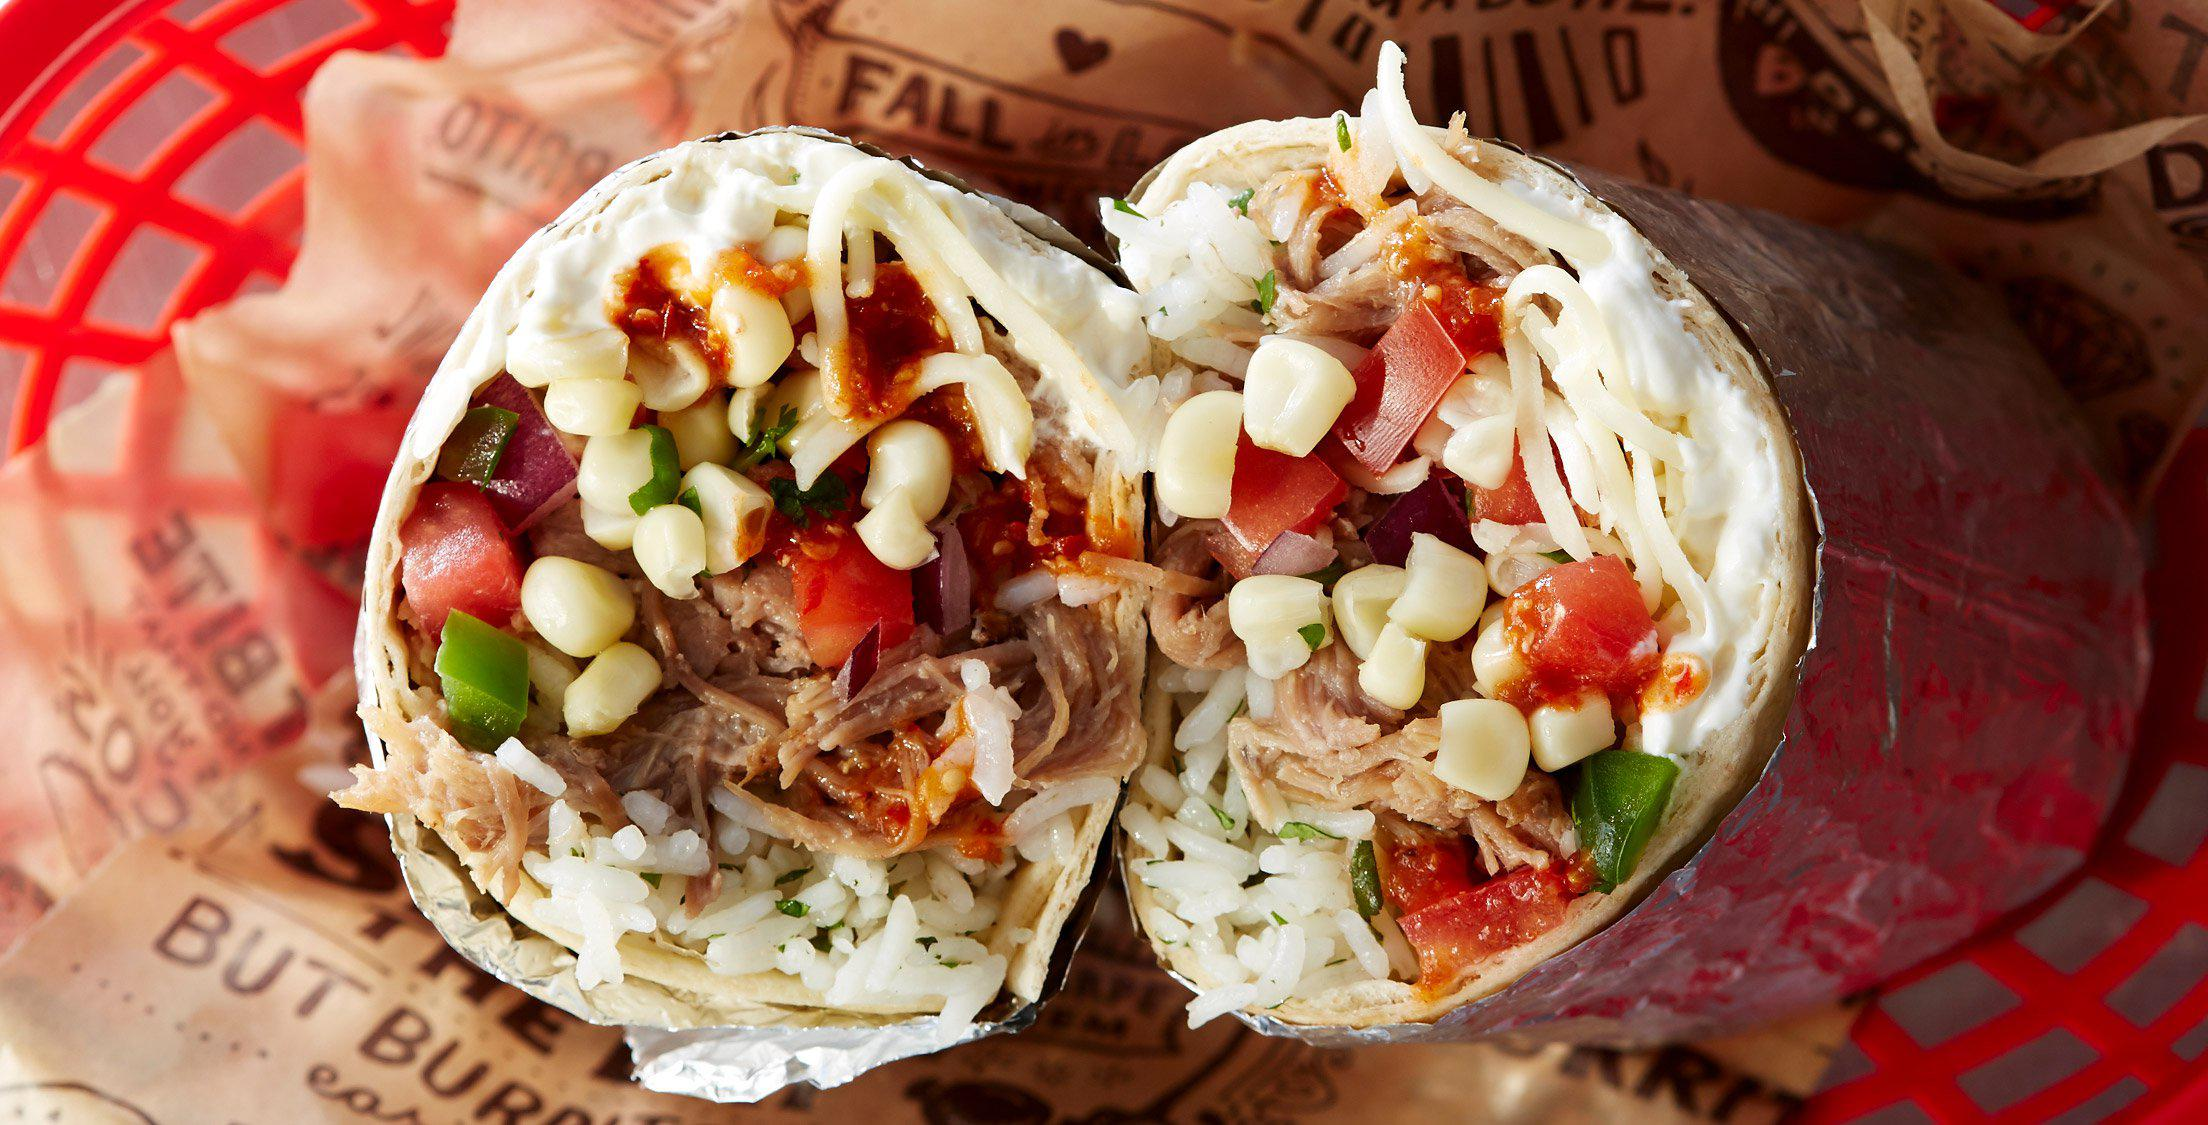 7 burrito pop culture moments to wrap your head around